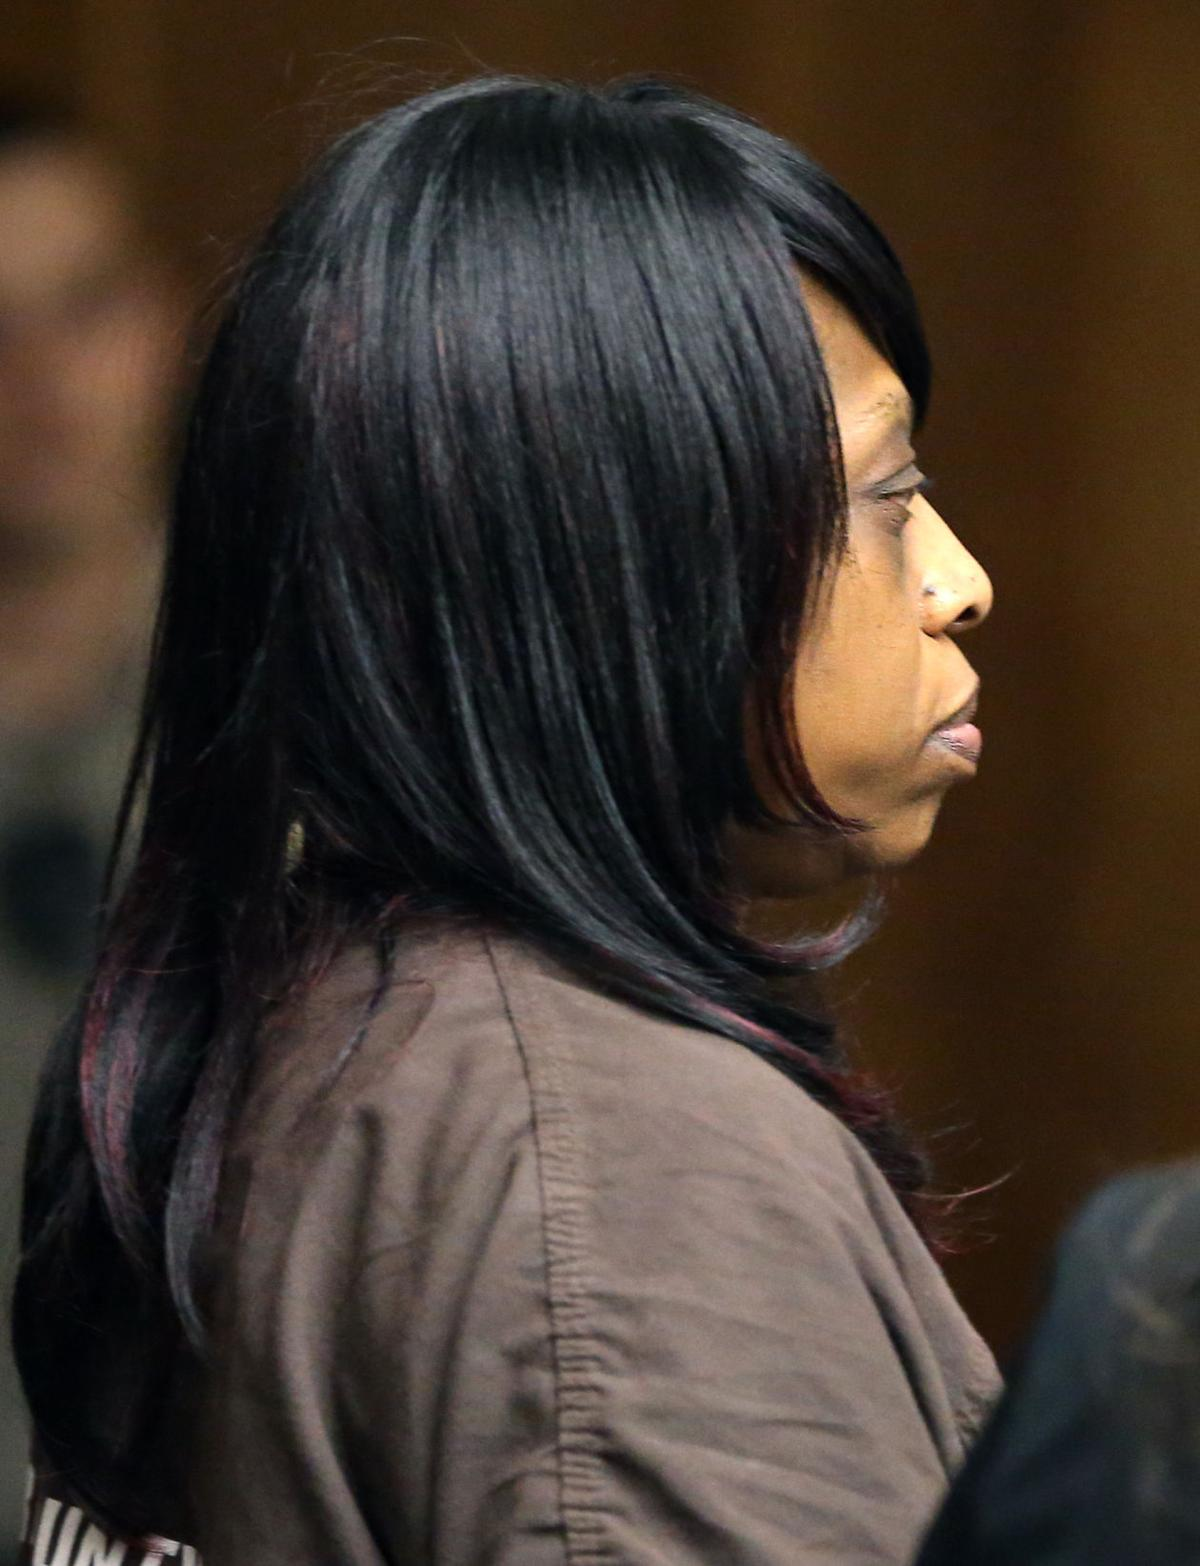 Prosecutor says evidence shows girlfriend killed J's Place owner over his affair with another woman